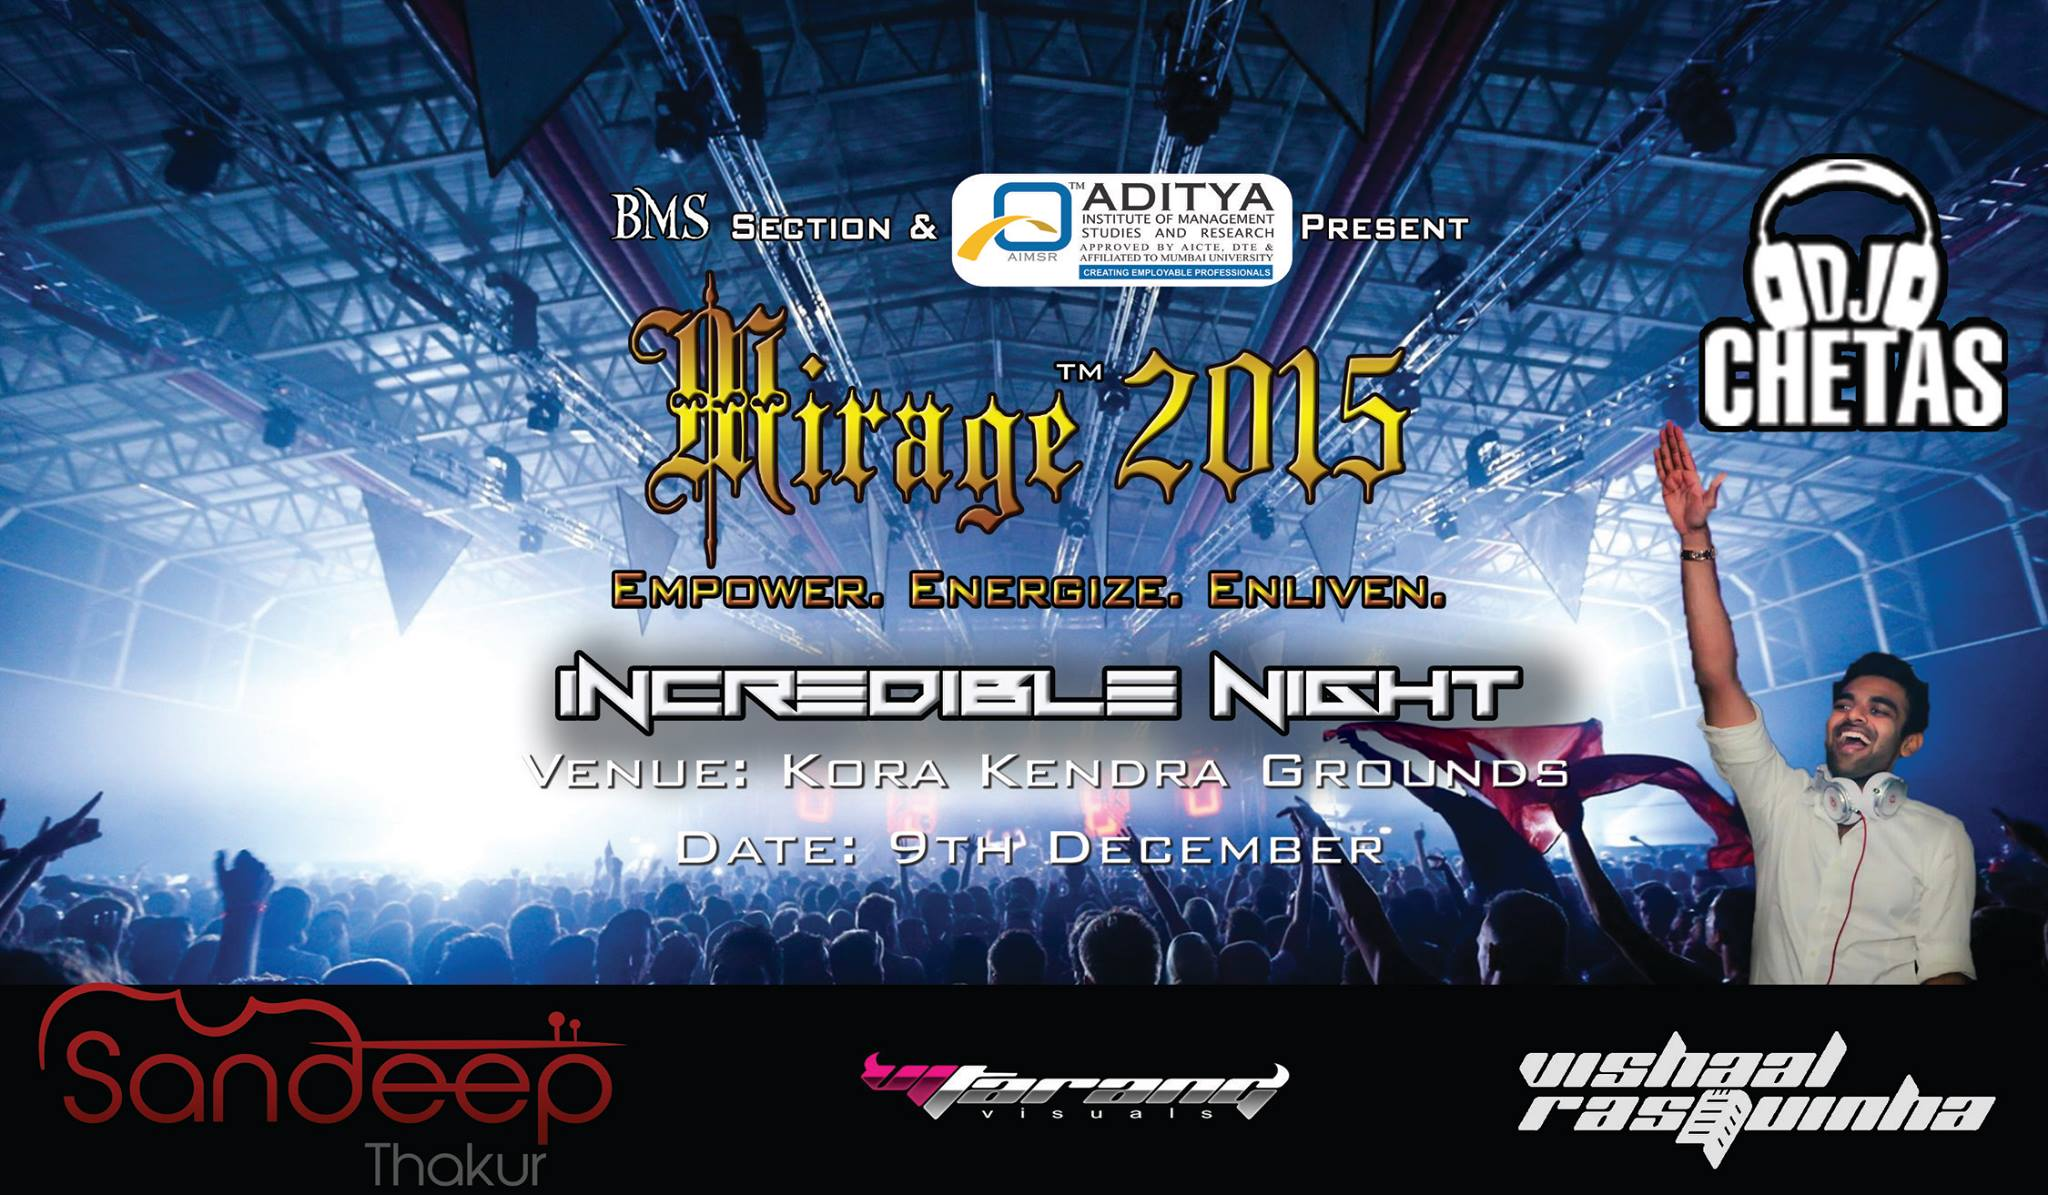 Book Online Tickets for Mirage 2015, Mumbai. MIRAGE IS A 5-DAY INTER-COLLEGIATE FESTIVAL ORGANIZED BY THE BMS SECTION OF THE NAGINDAS KHANDWALA COLLEGE OF SCIENCE ,ARTS AND COMMERCE, MALAD WEST.